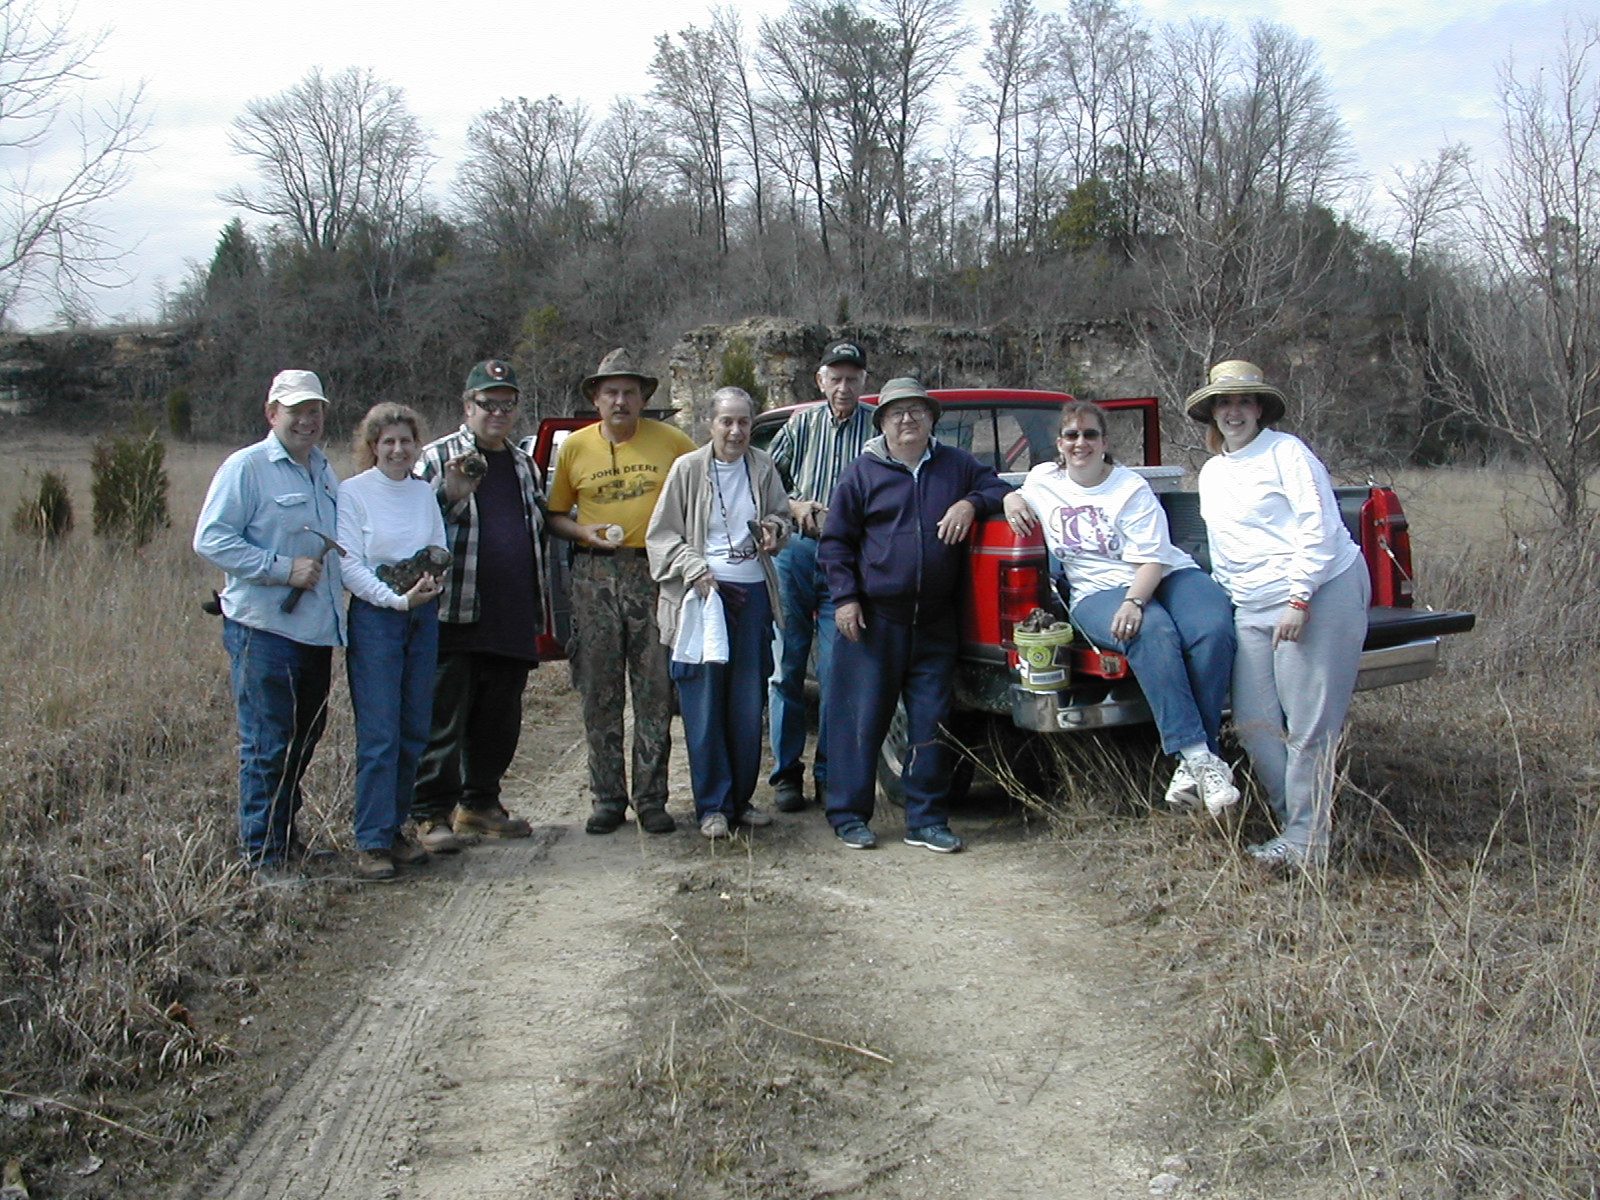 William, Betty, Tuell, Jim, Viola, Jack, Ron, Jennifer, and Jamie at a Perry field trip.